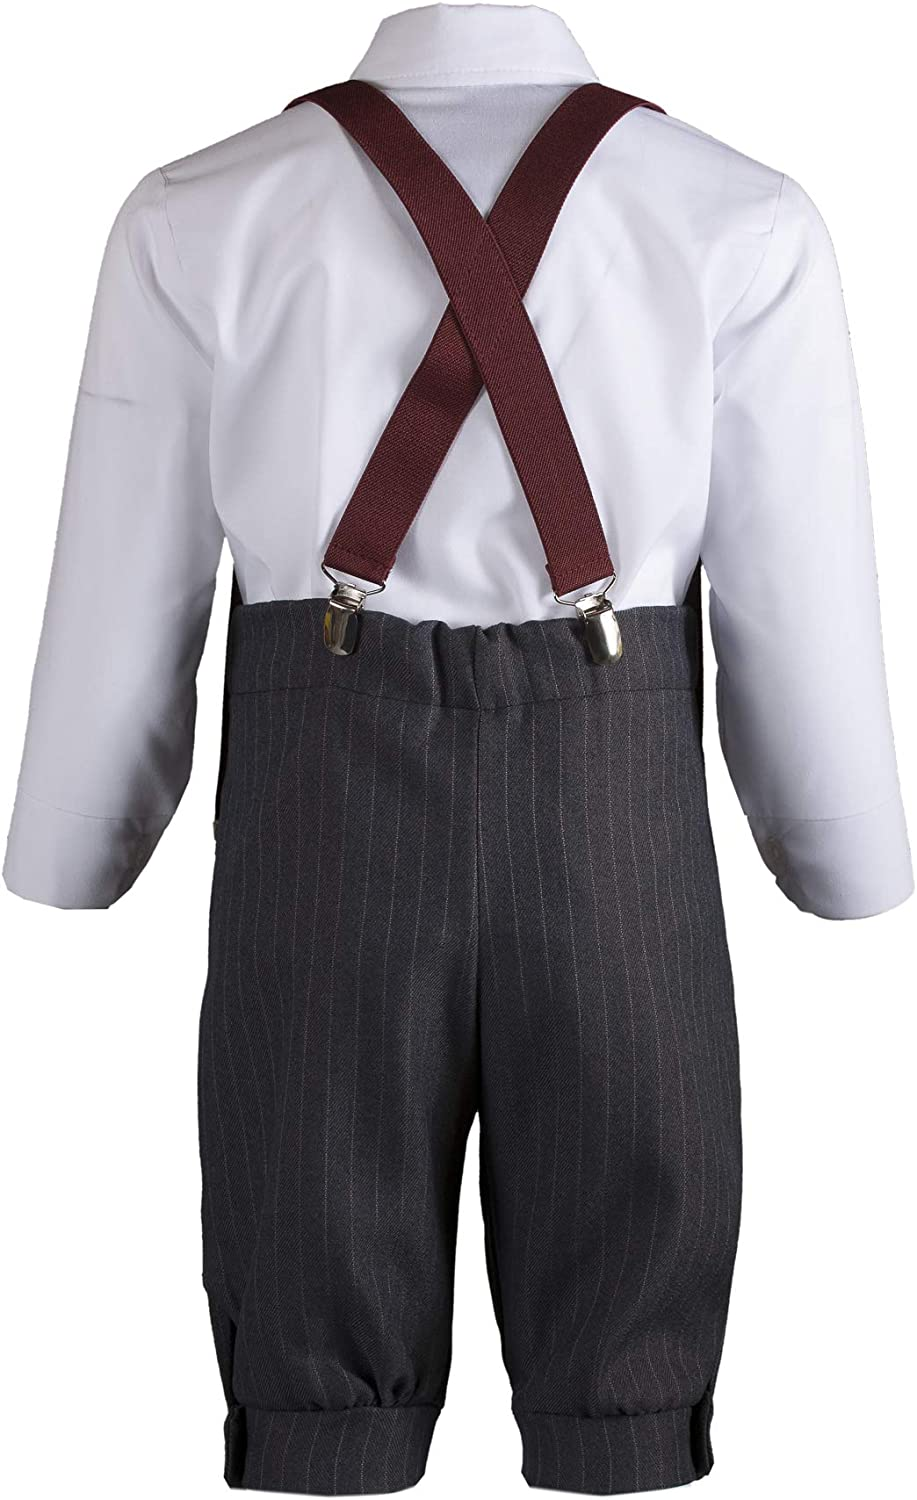 Tuxgear Boys Grey Knicker Set Burgundy Rose Bow Tie Suspenders and Pageboy Cap